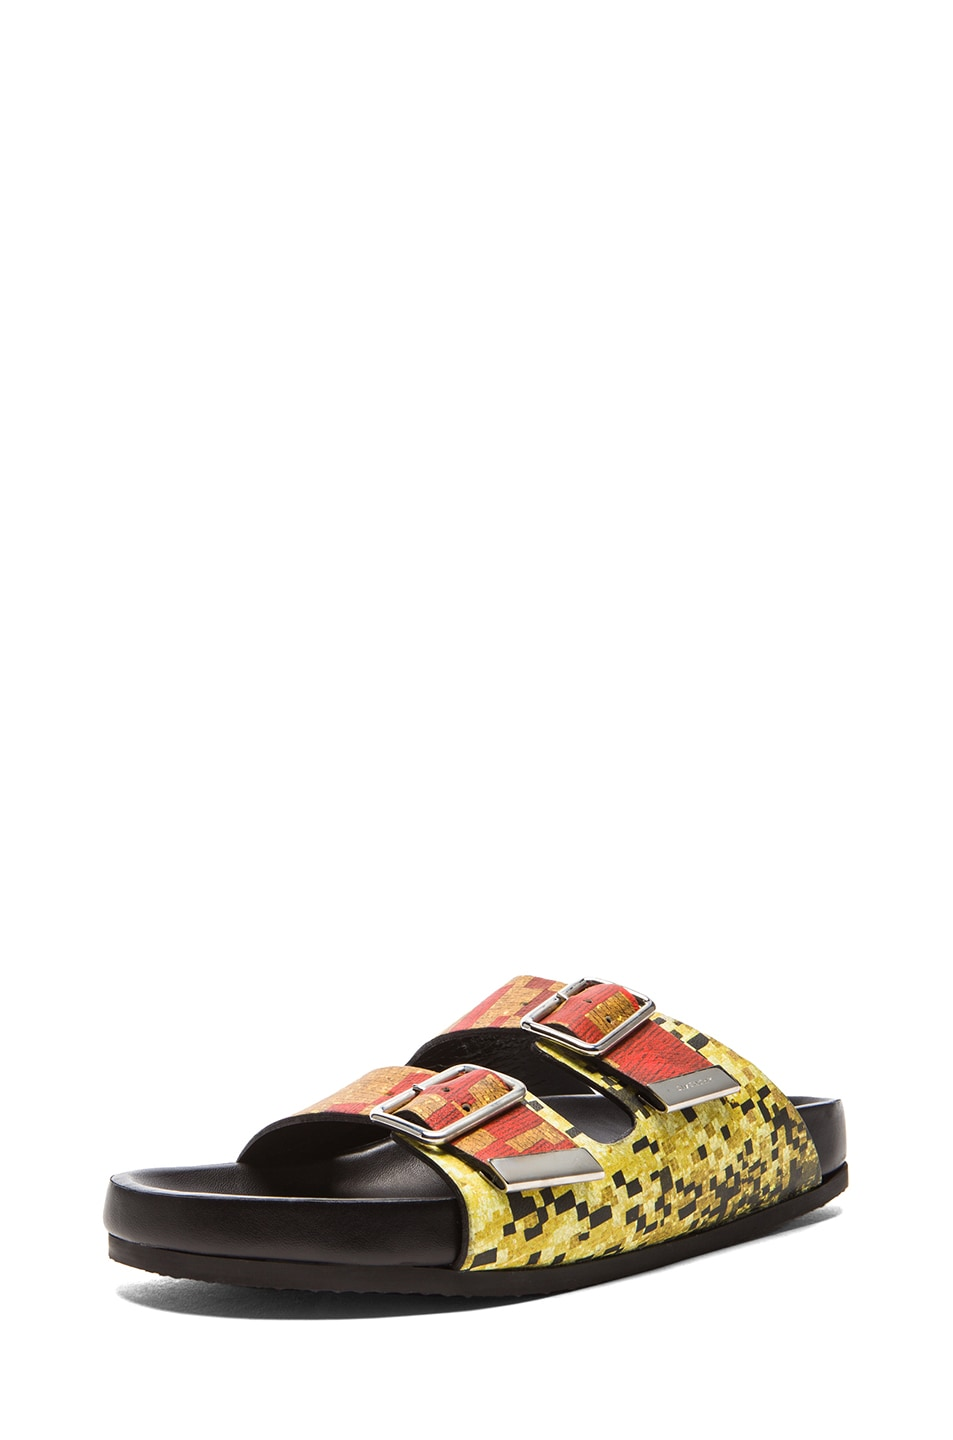 Image 2 of GIVENCHY Printed Swiss Leather Sandals in Multi